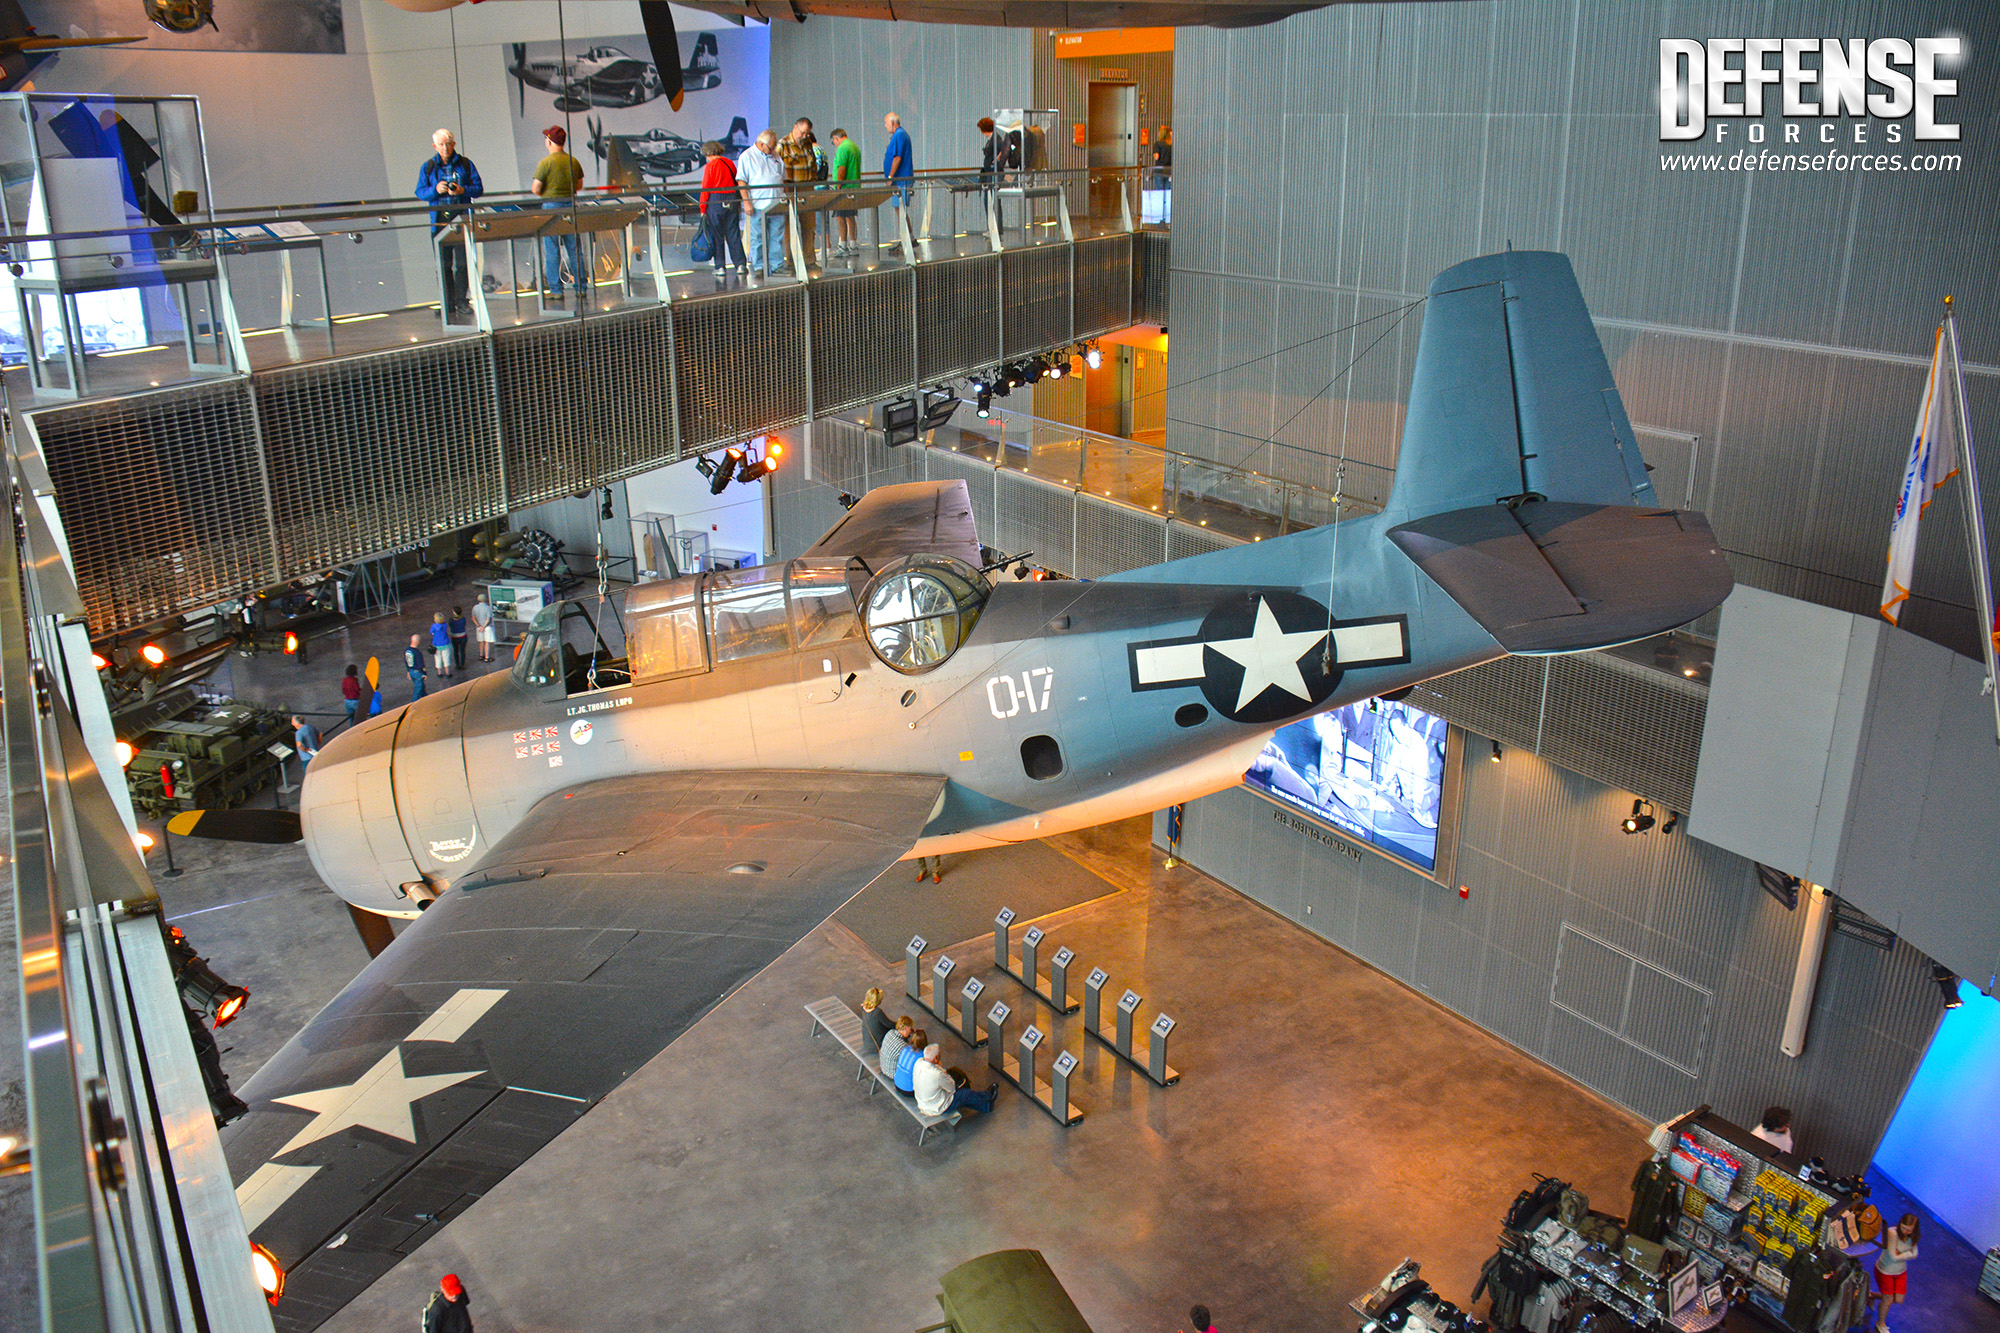 The National WWII Museum - 13